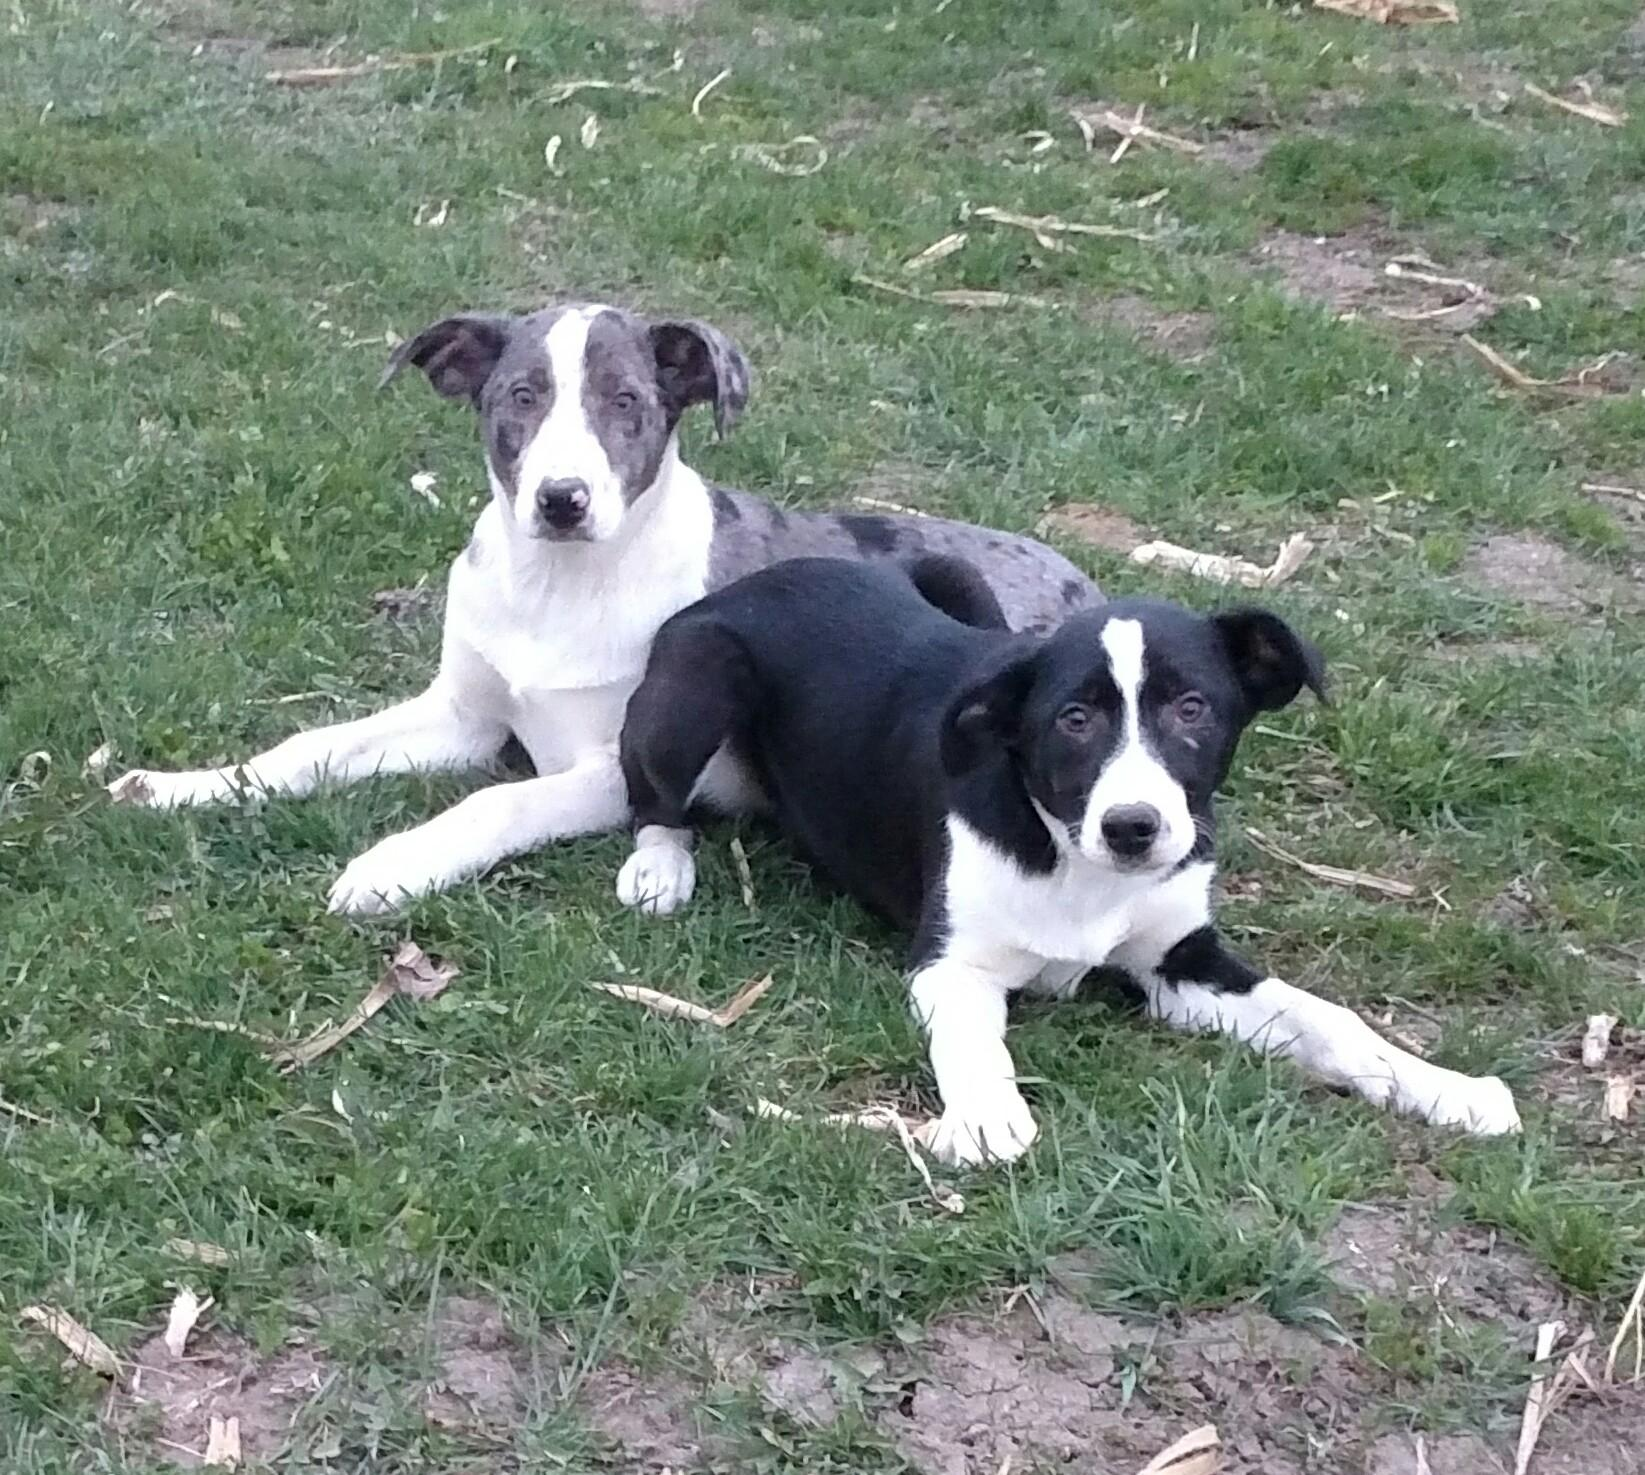 Hanging tree cow dogs for sale - _20160410_202401